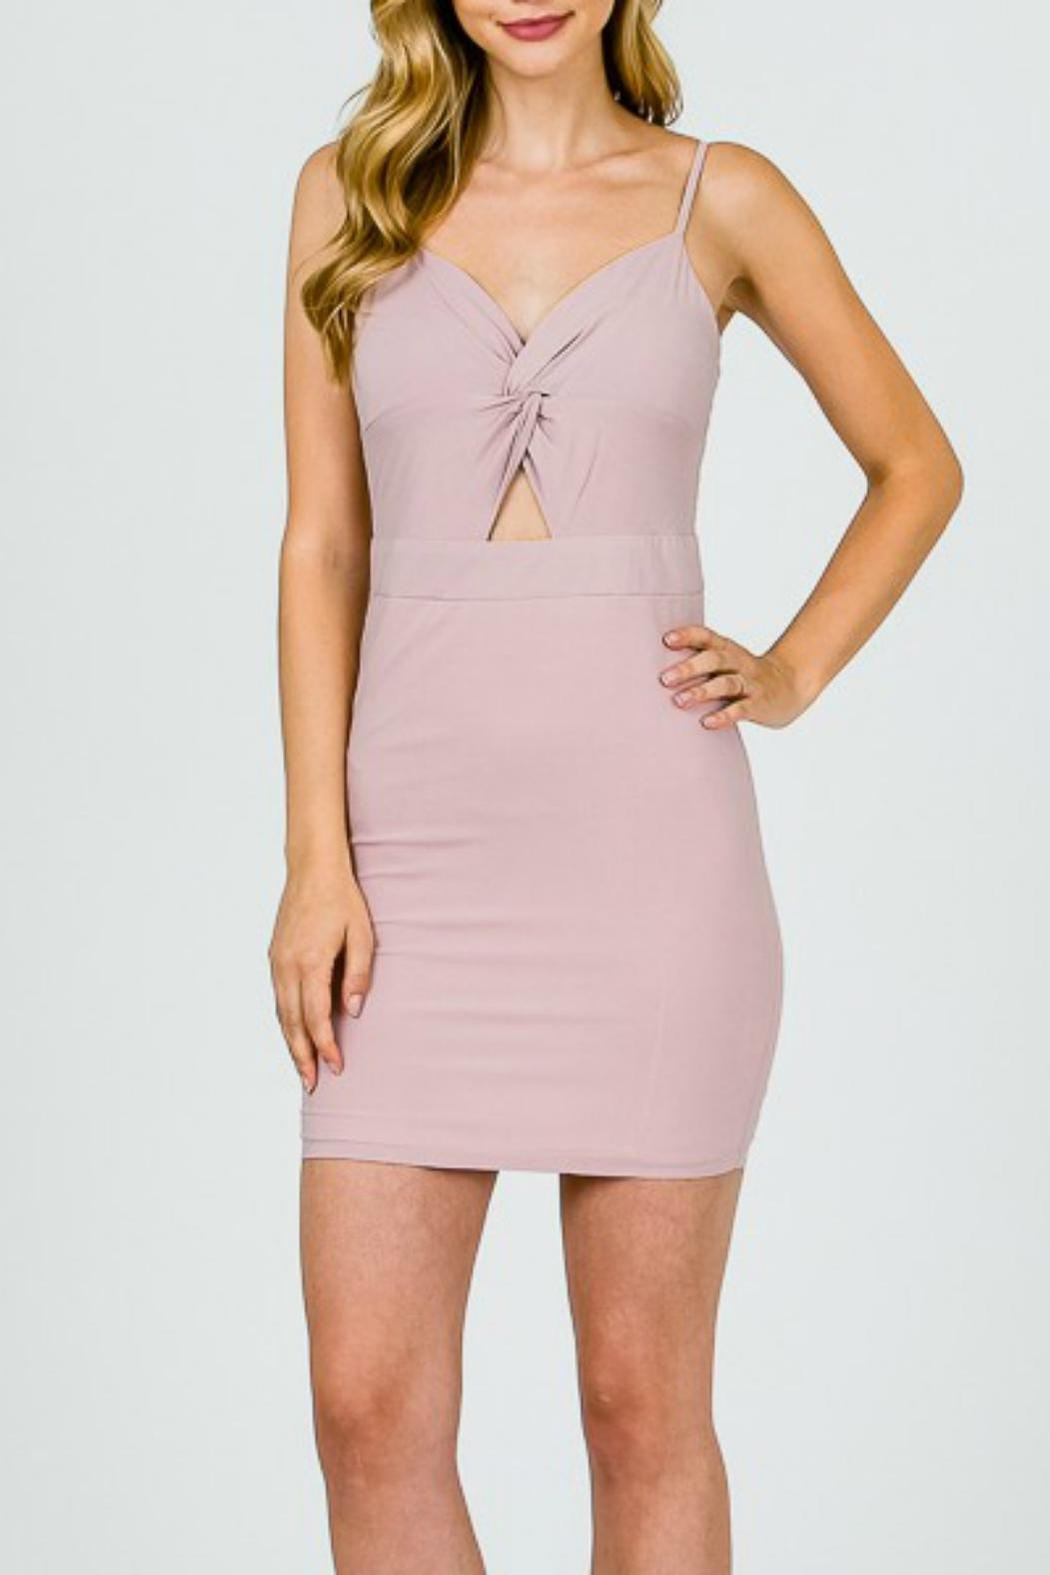 Pretty Little Things Twist Front Dress - Front Cropped Image